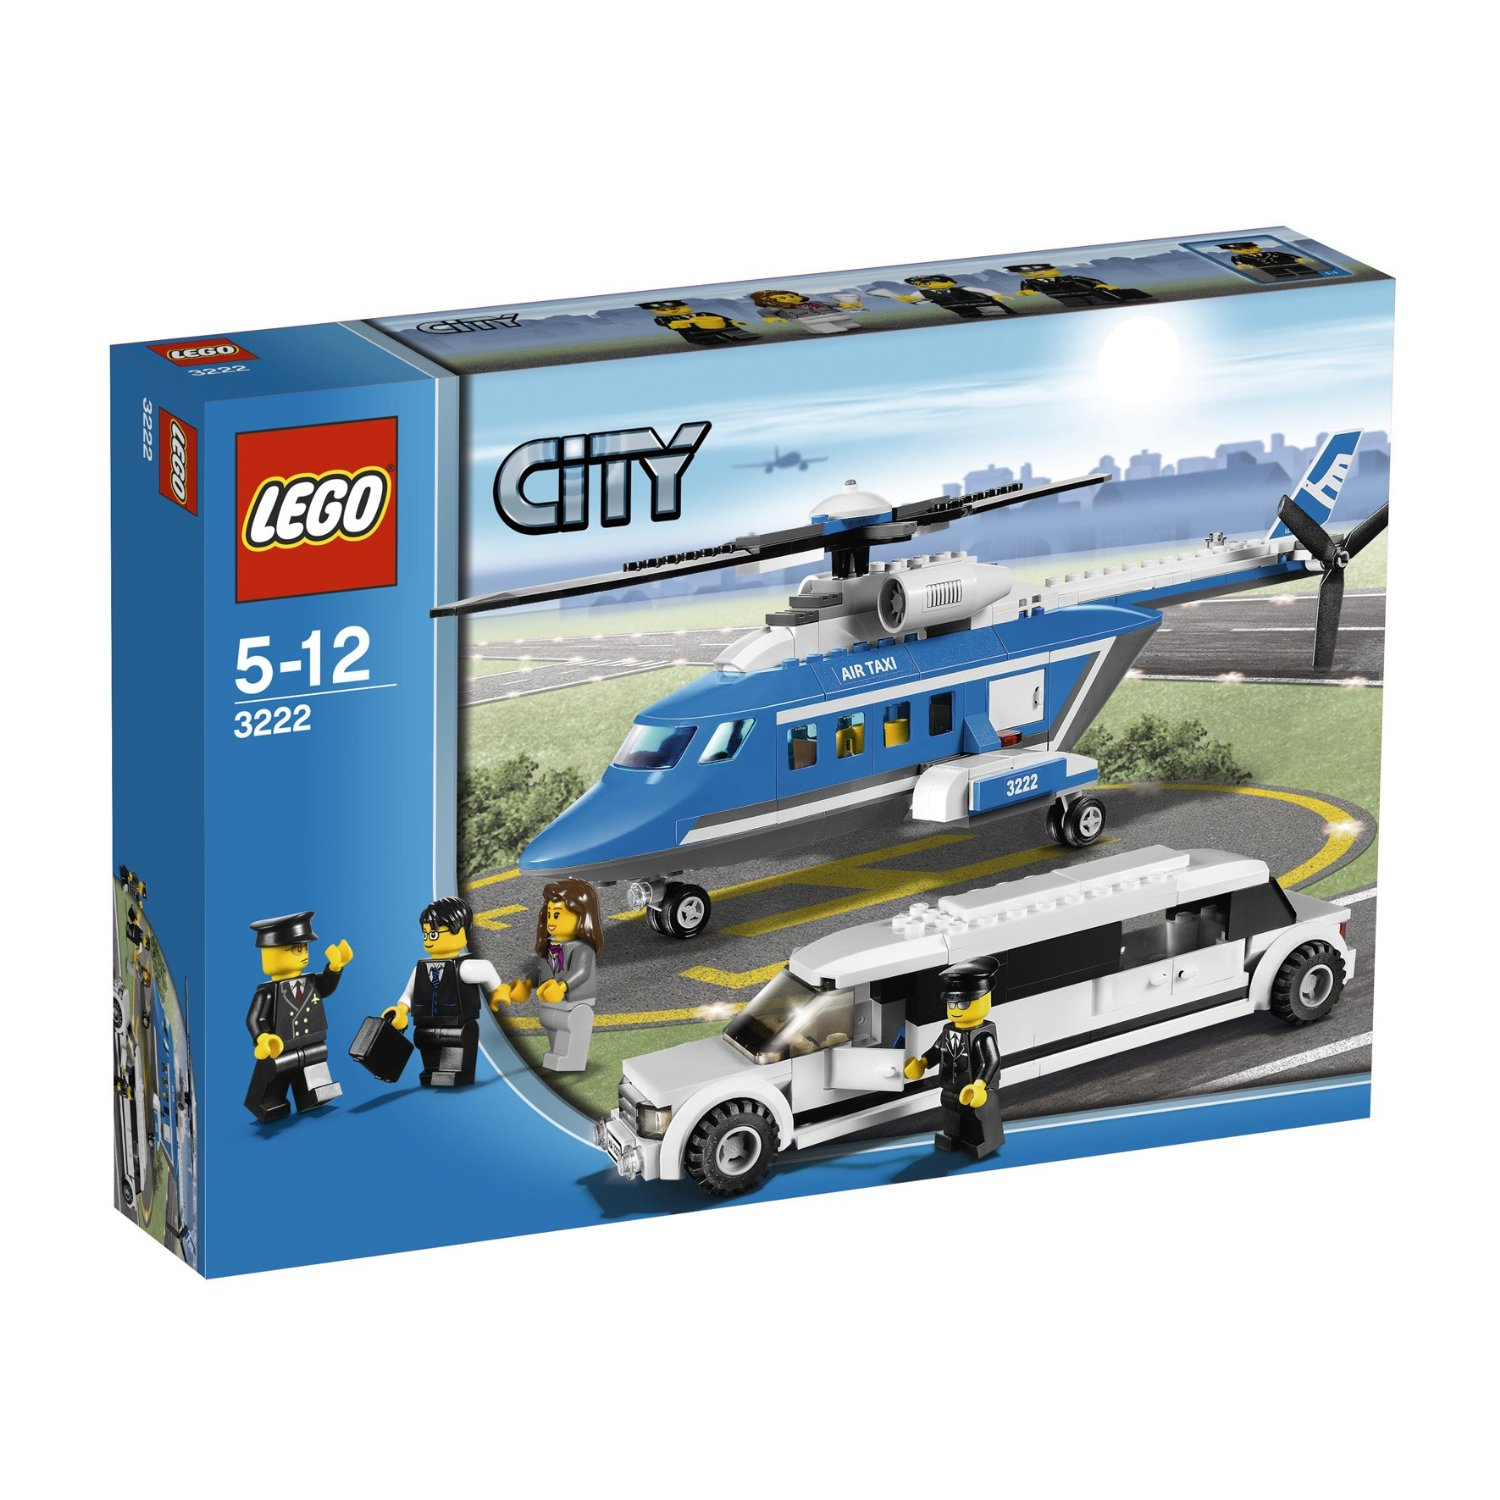 groupon new york helicopter tour with Lego Private Jet And Limo on Curiosites Futilites blogspot likewise Manhattan Helicopters 5 besides Private Tour Guide Philadelphia additionally Allen Batista Travel also The Ride.